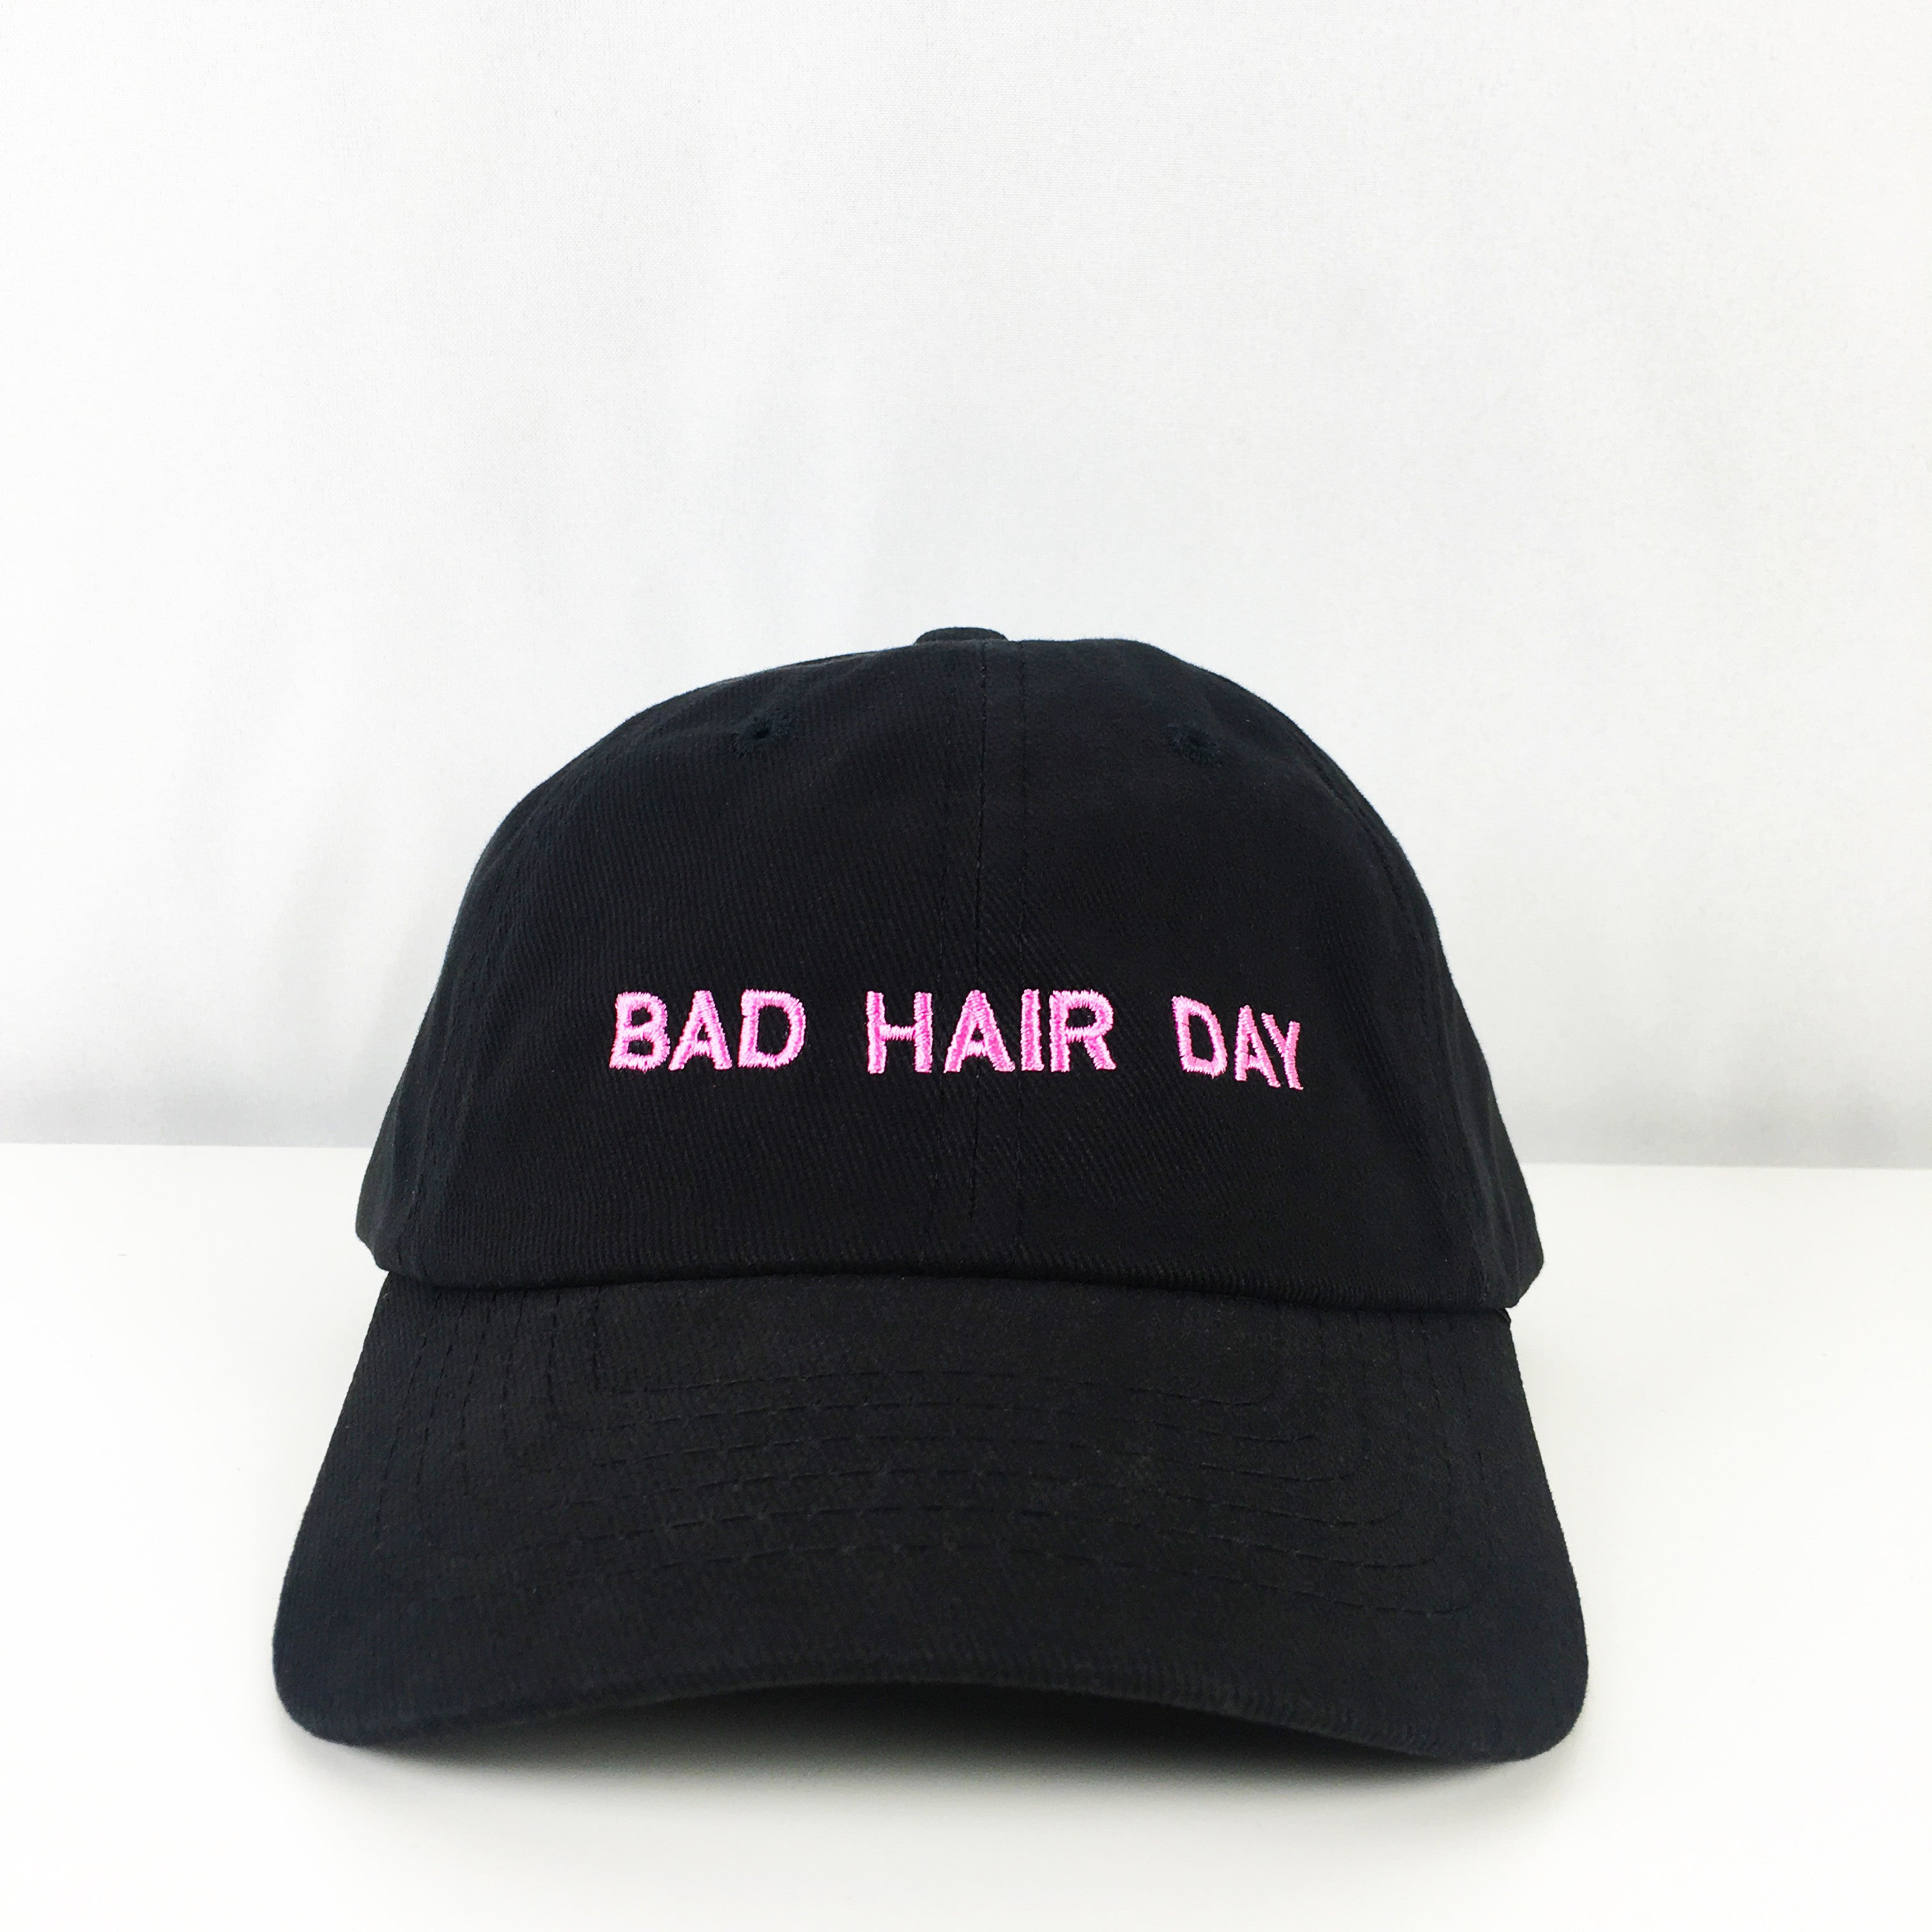 Bad Hair Day Embroidered Basic Cap